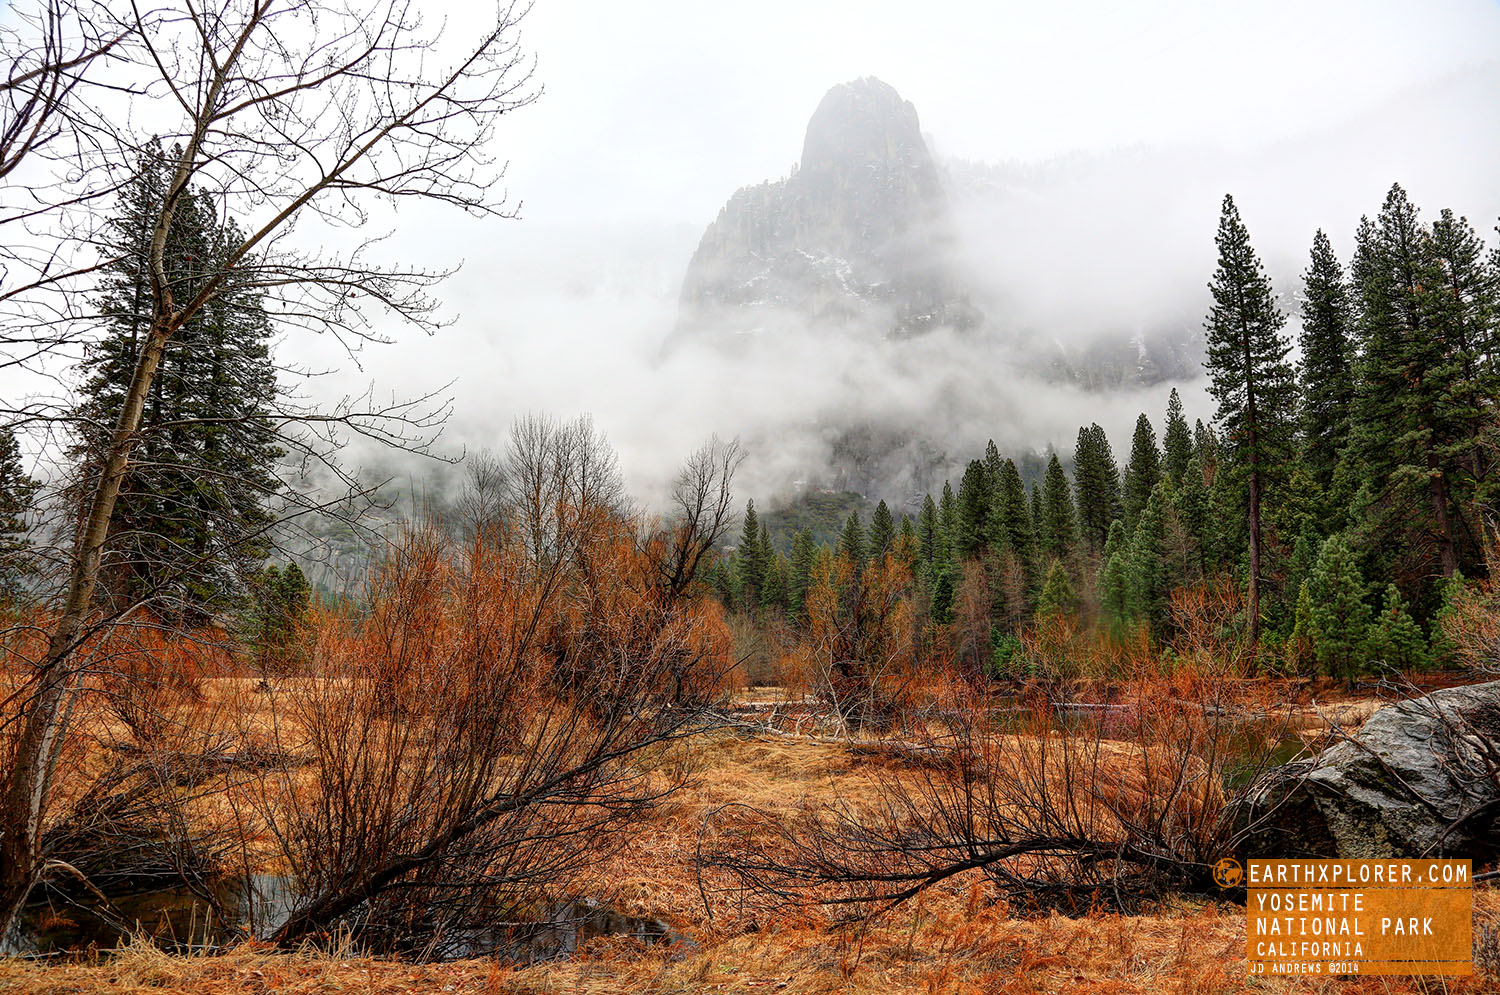 Foggy Day in Yosemite National Park